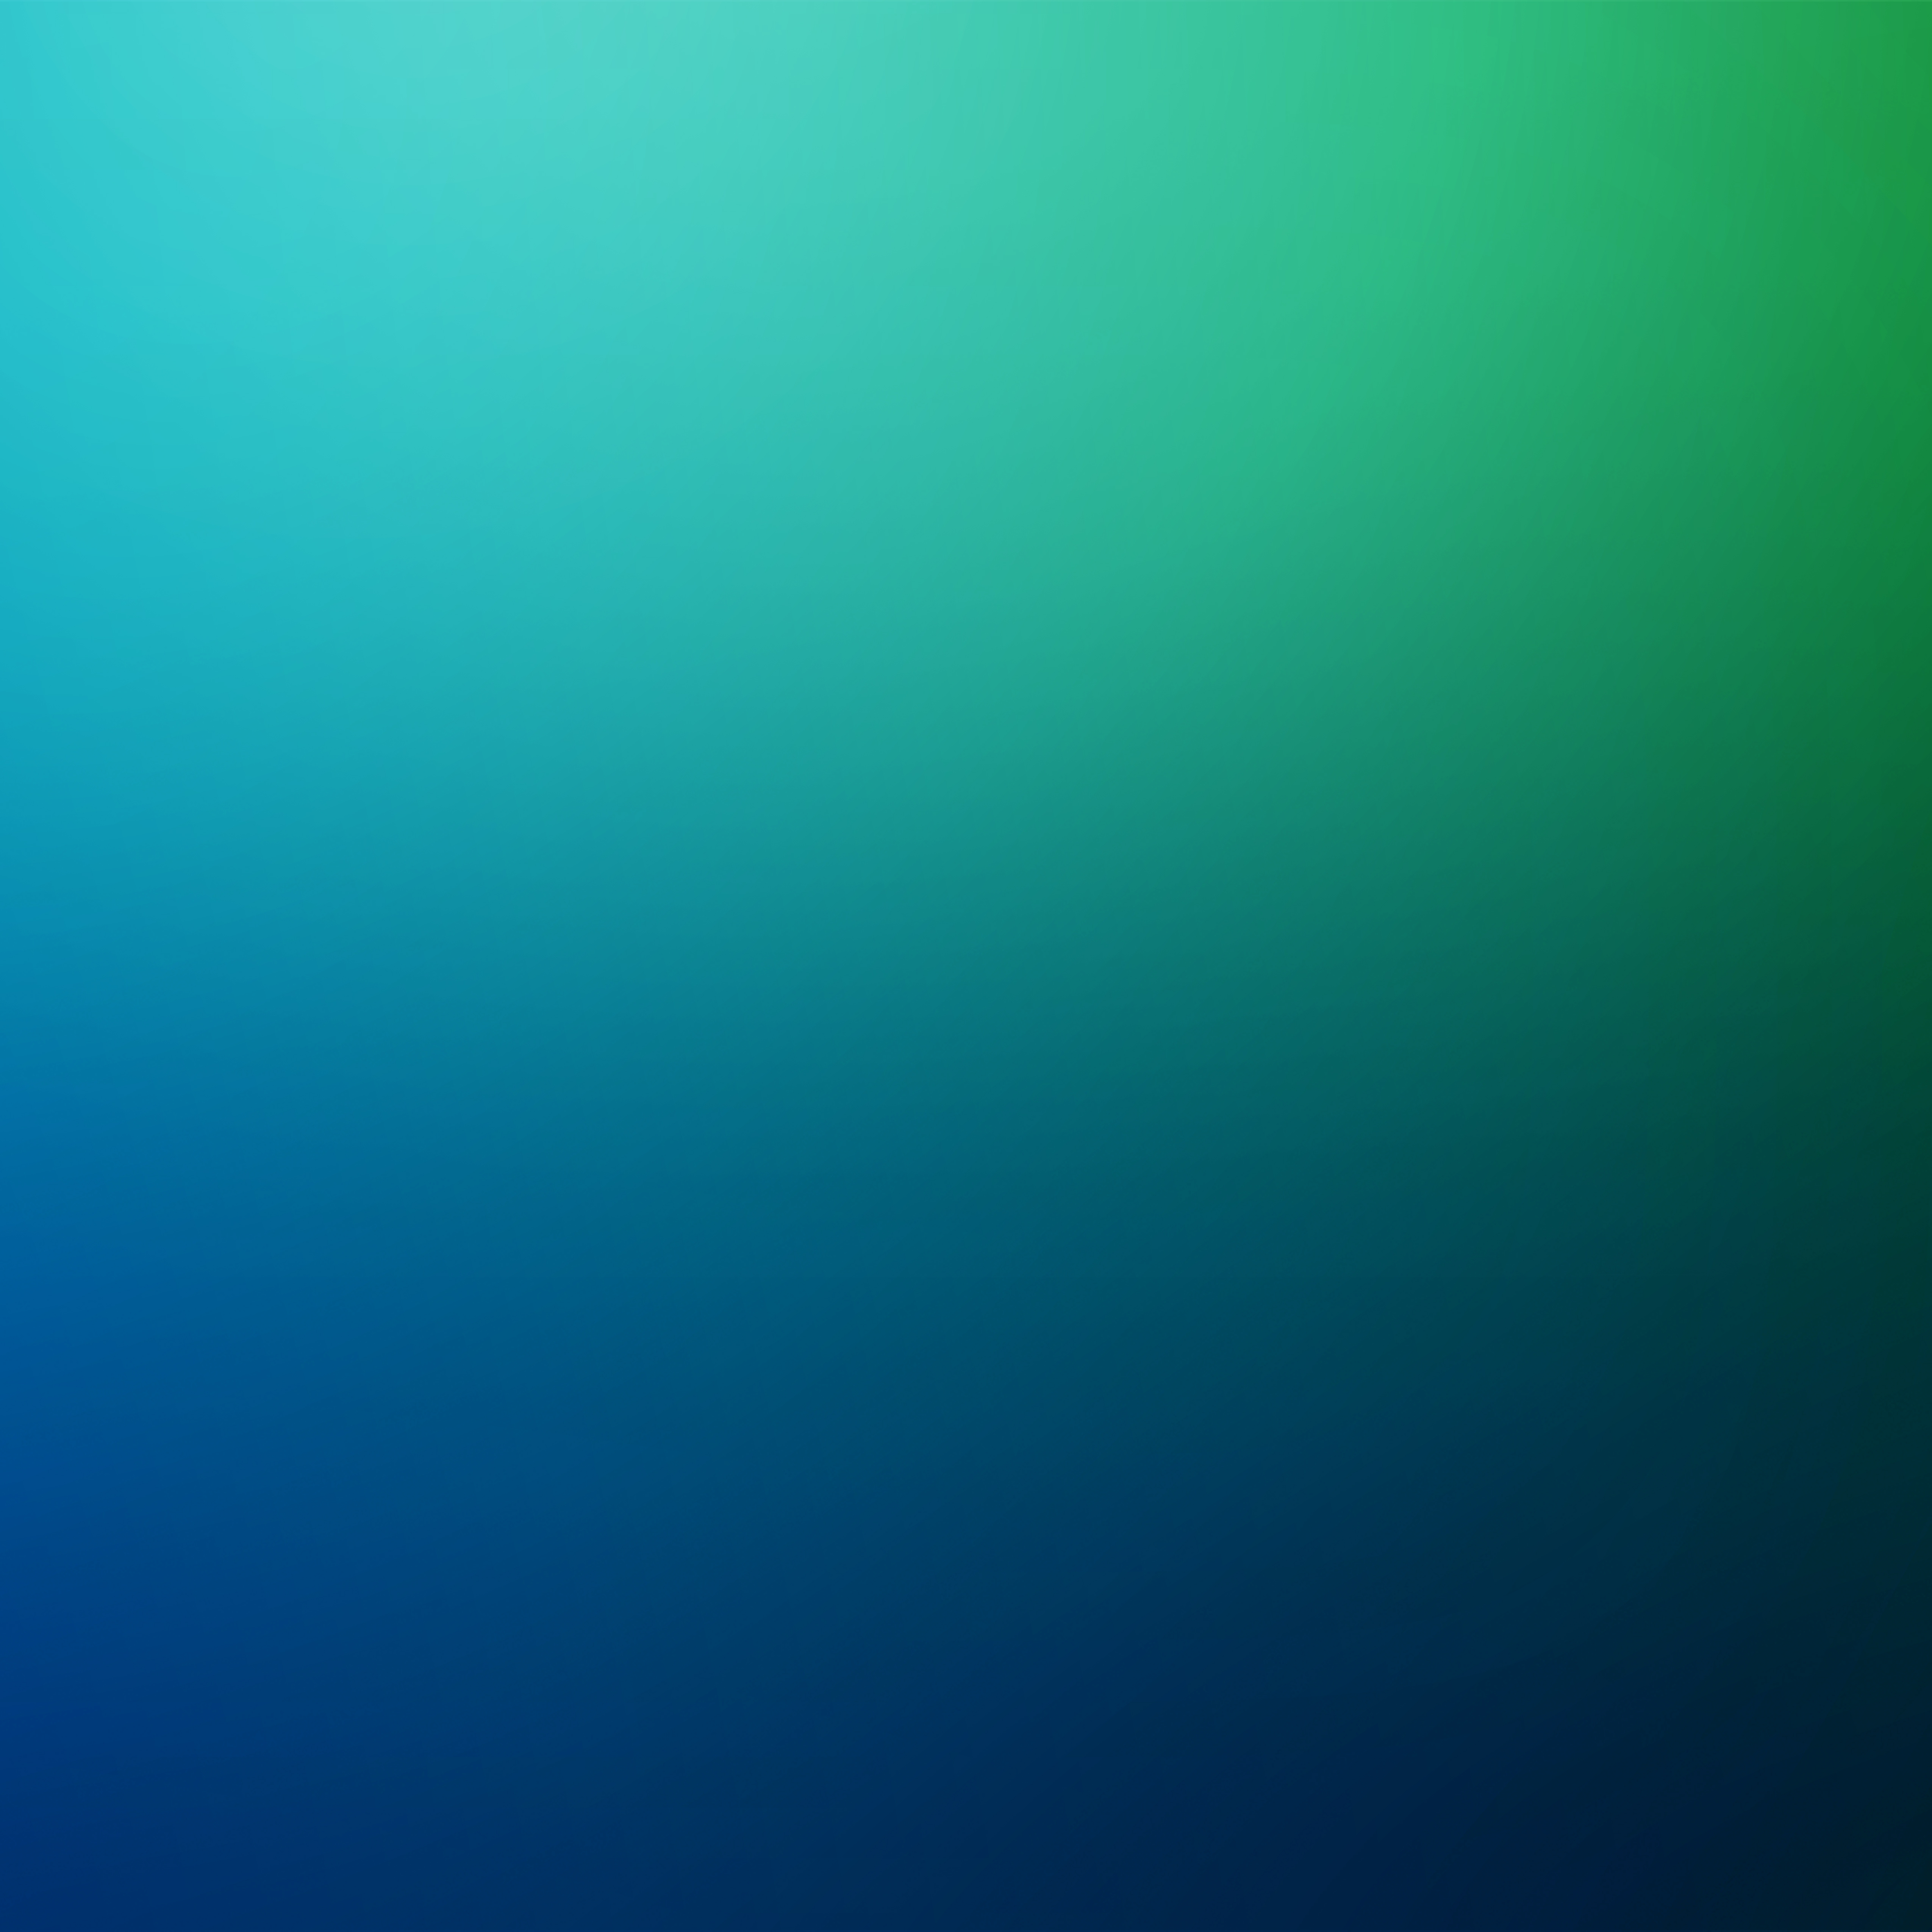 Green and Blue Defocused Blurred Motion Abstract Background, Square Illustration